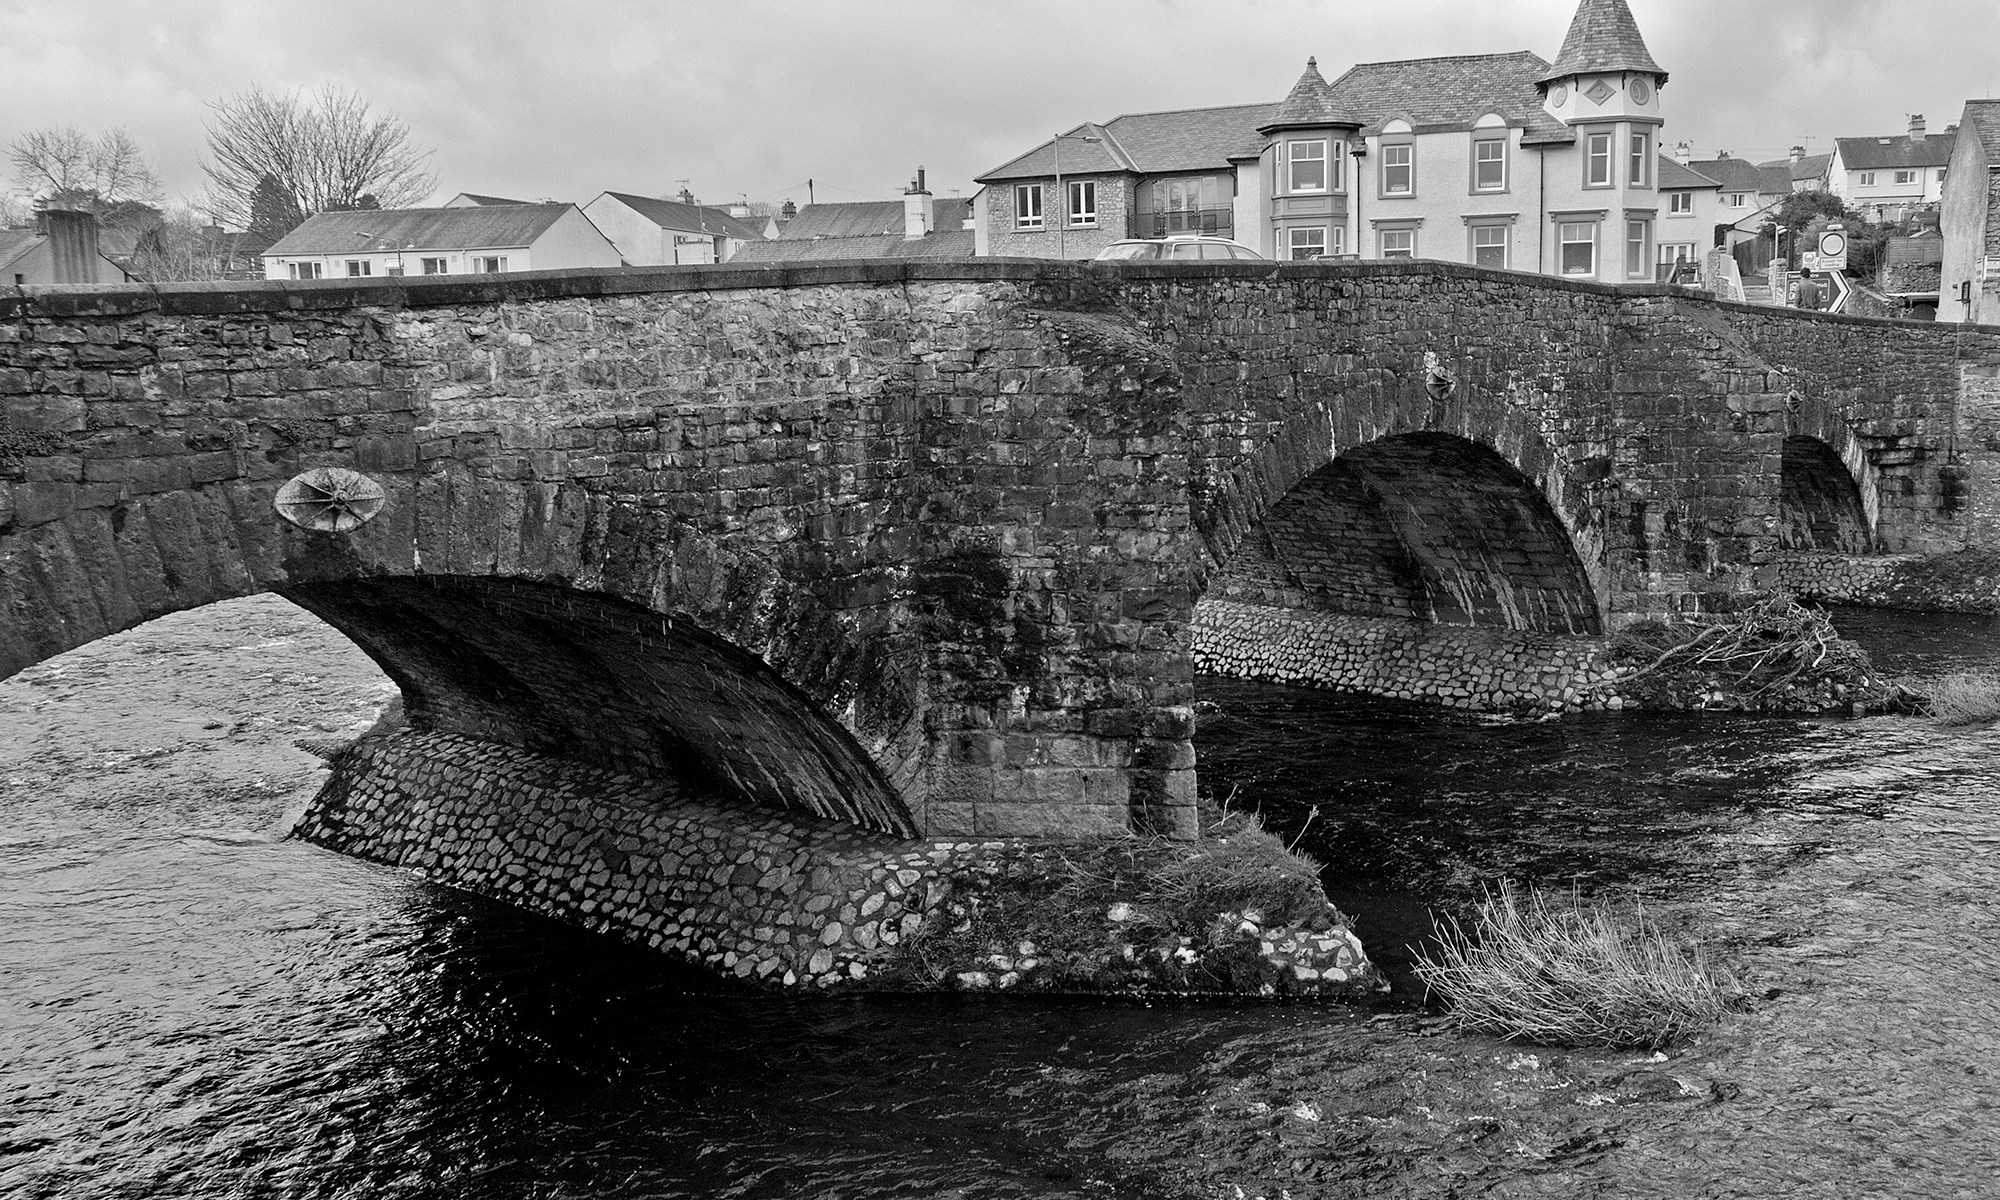 Nether Bridge, Kendal